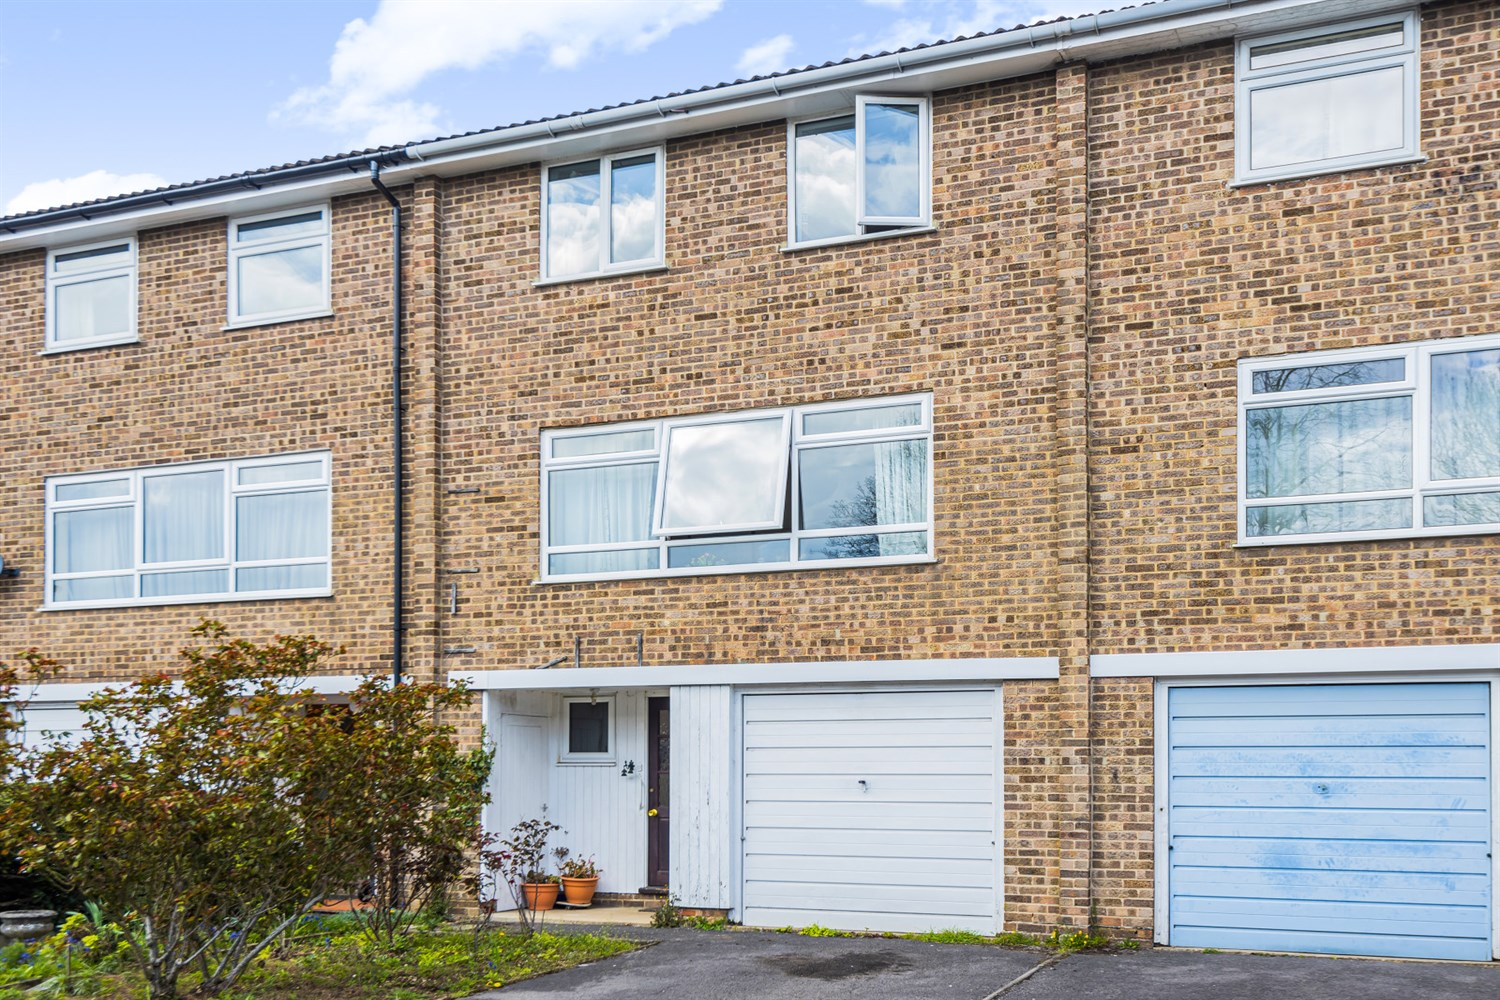 Portway Close, Reading, RG1 6LB